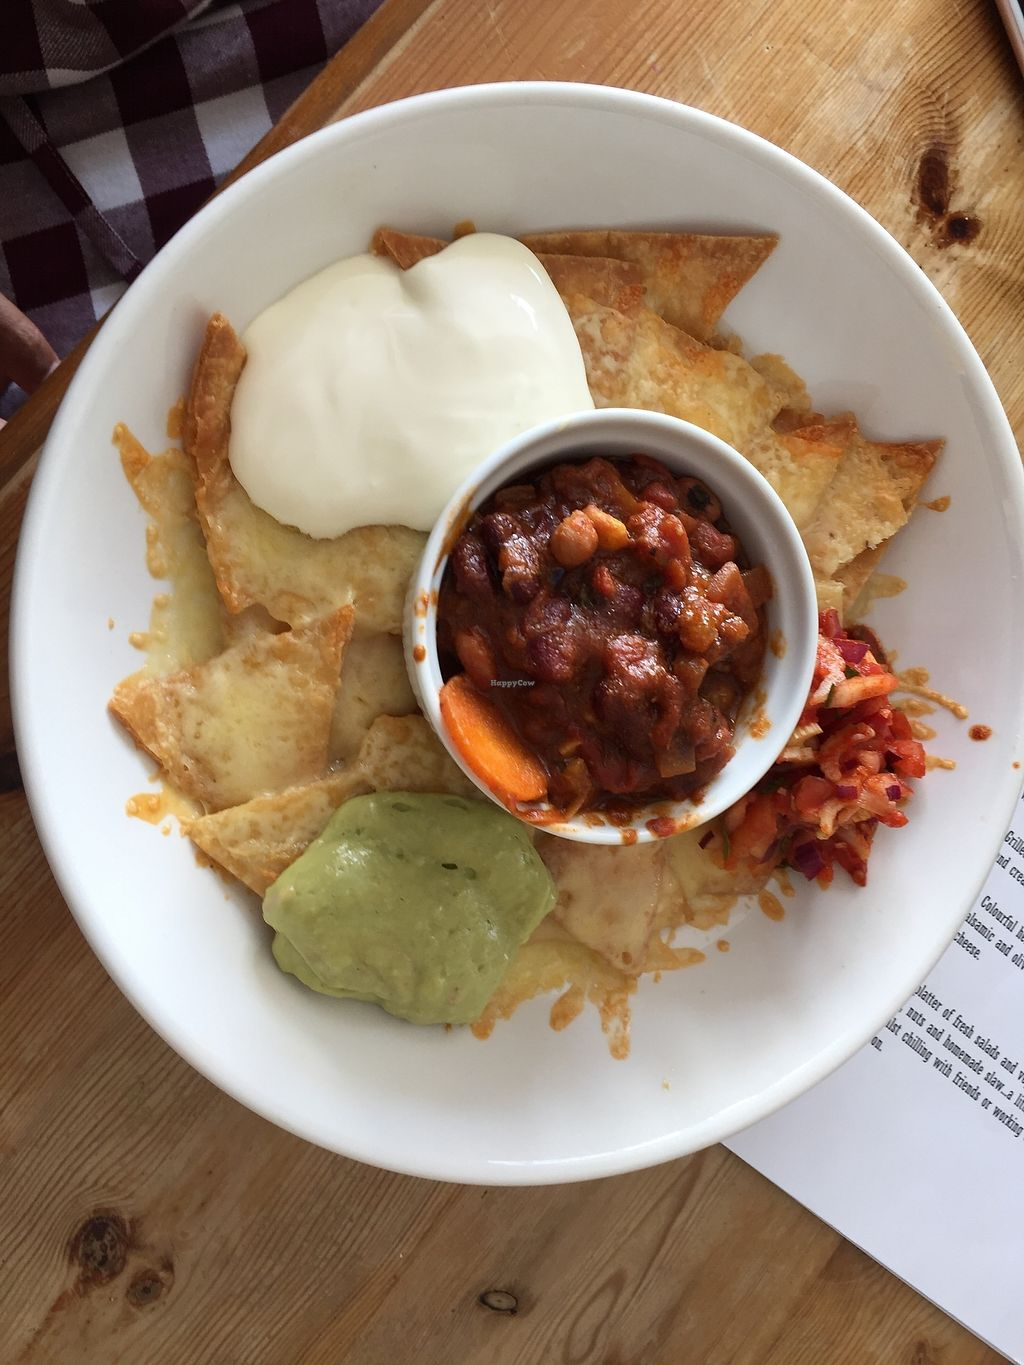 """Photo of The Beached Lamb Cafe  by <a href=""""/members/profile/Ashni"""">Ashni</a> <br/>Vegetarian nachos with beans <br/> July 9, 2017  - <a href='/contact/abuse/image/26982/278228'>Report</a>"""